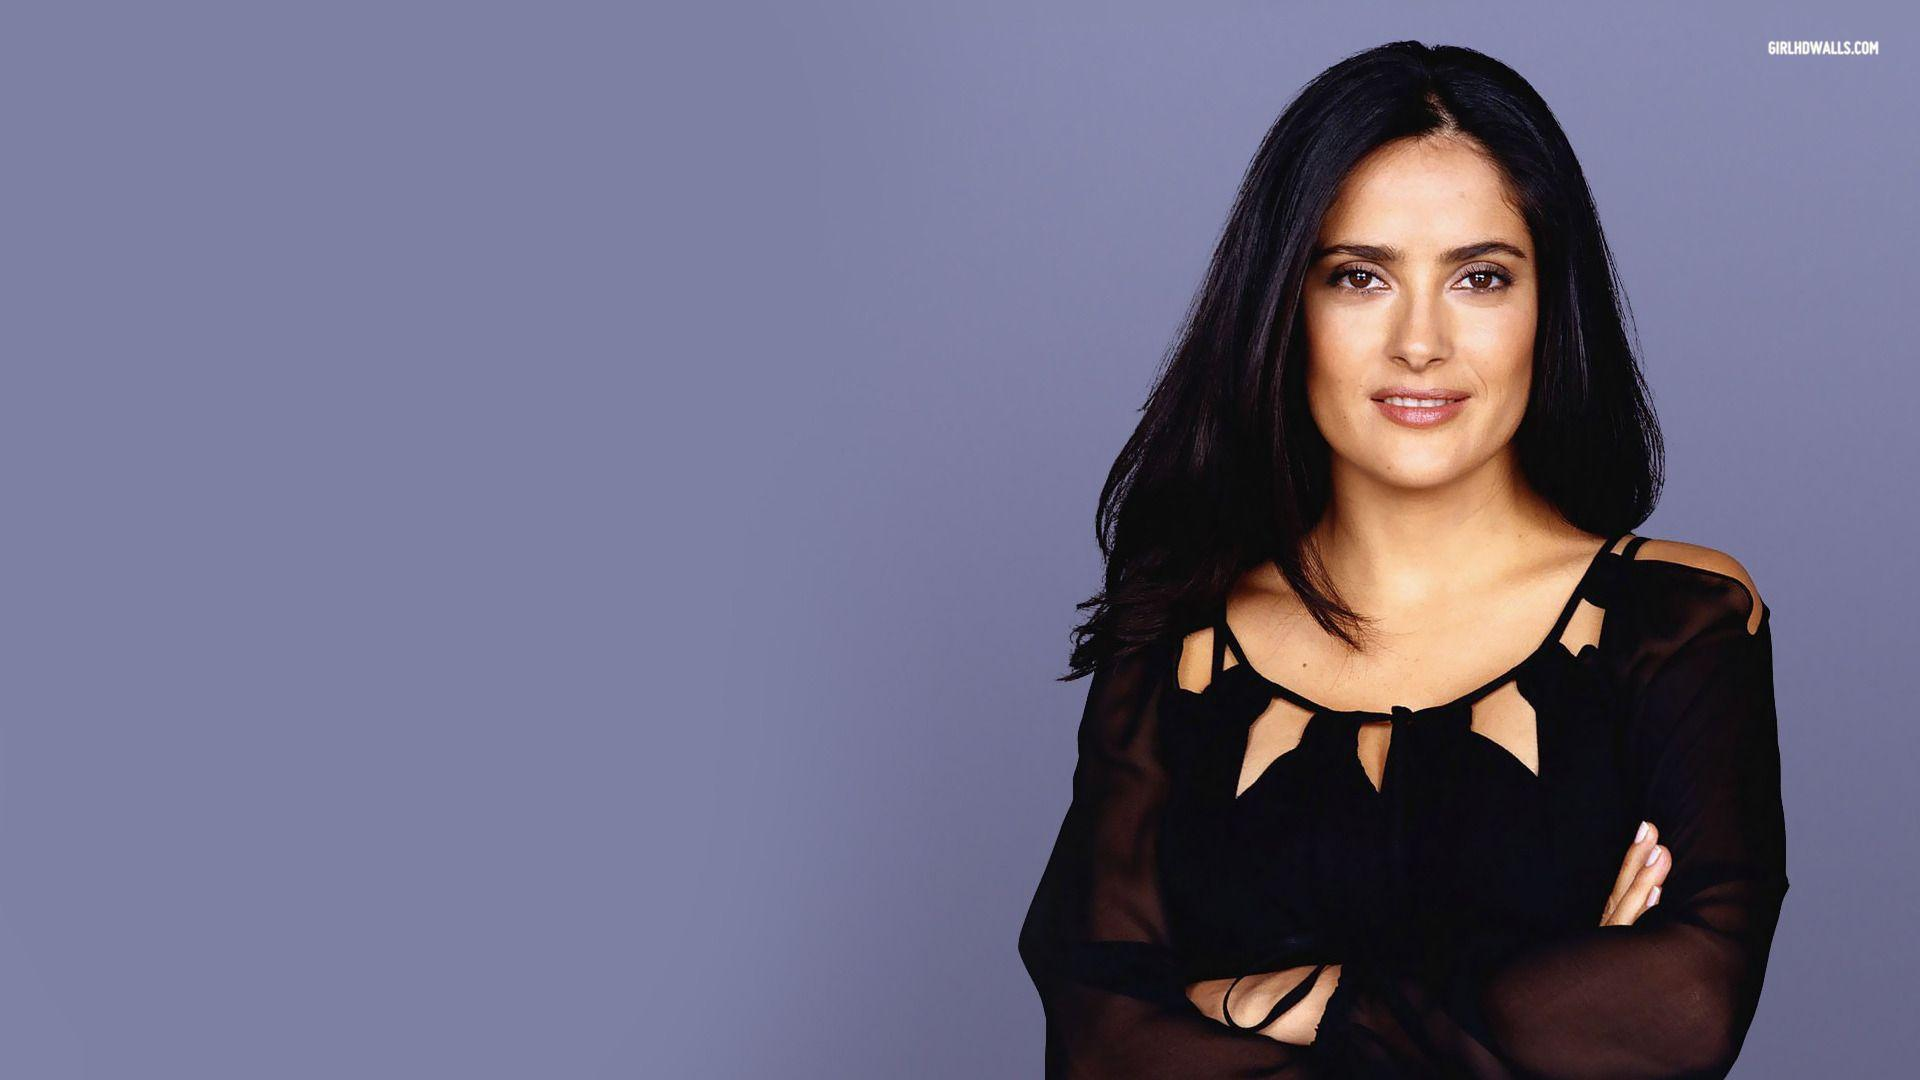 Salma Hayek wallpaper #